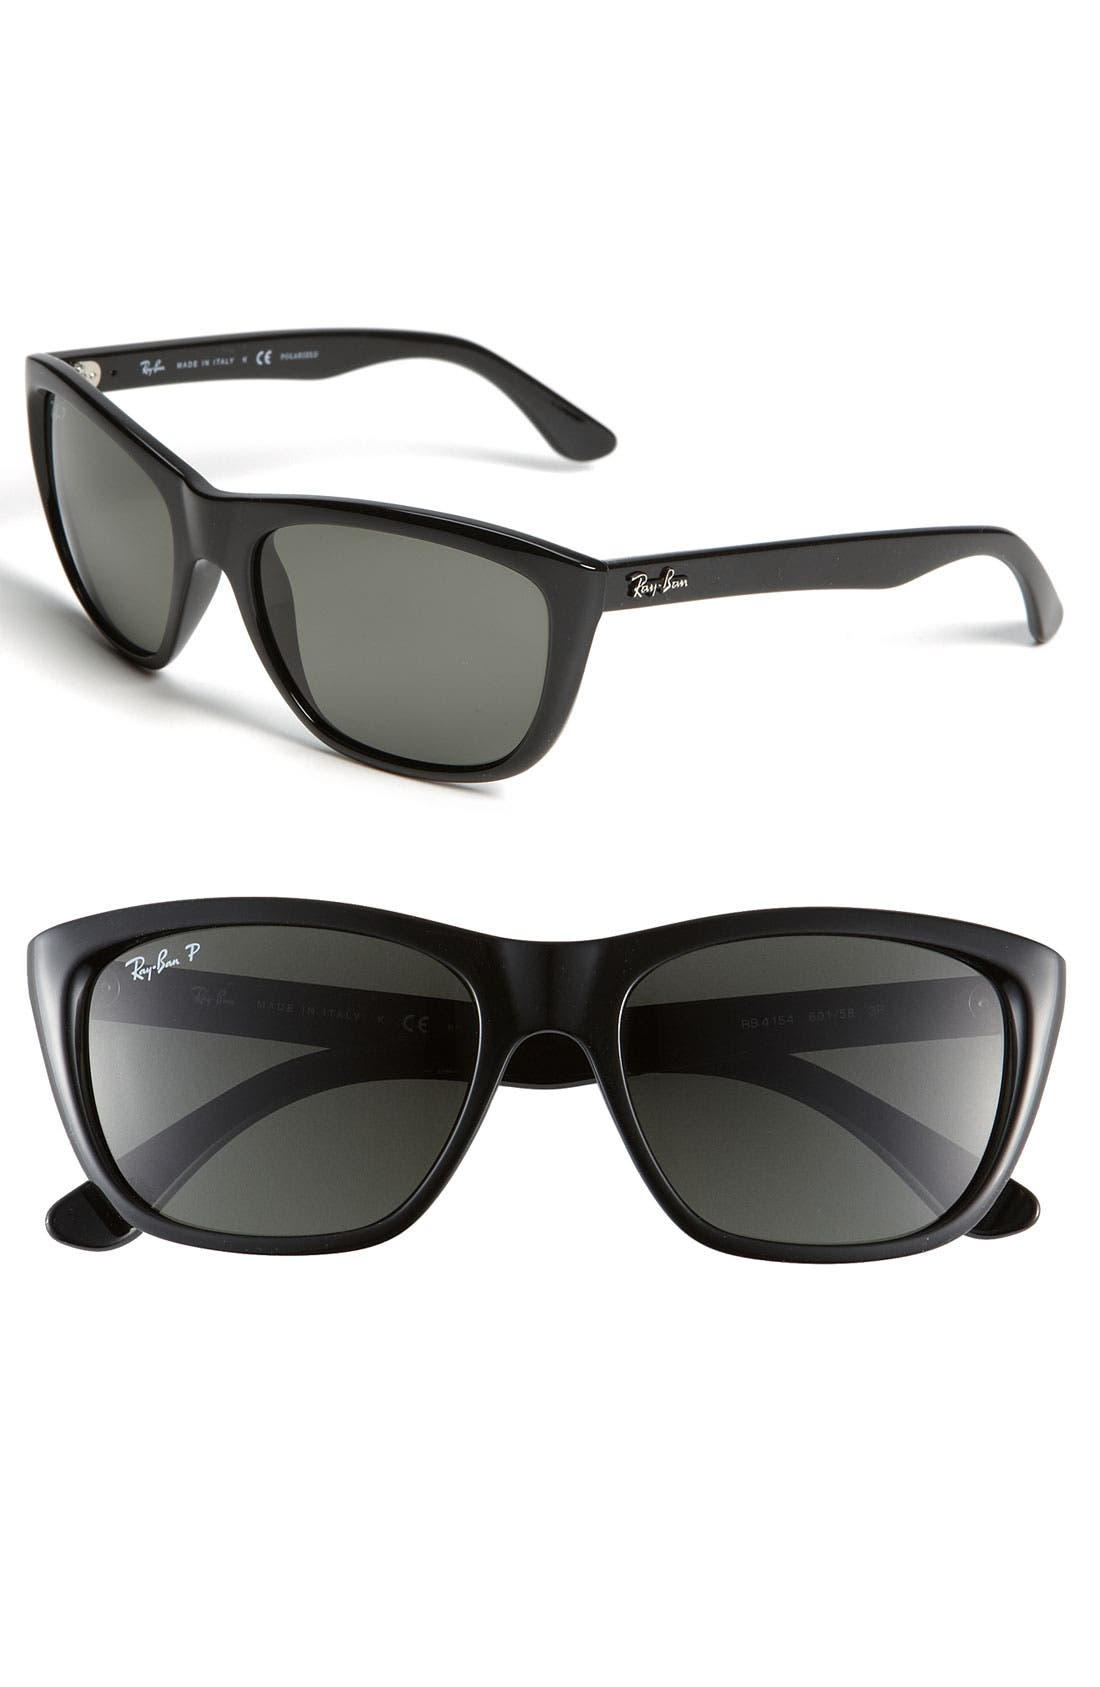 Main Image - Ray-Ban Polarized 55mm Sunglasses